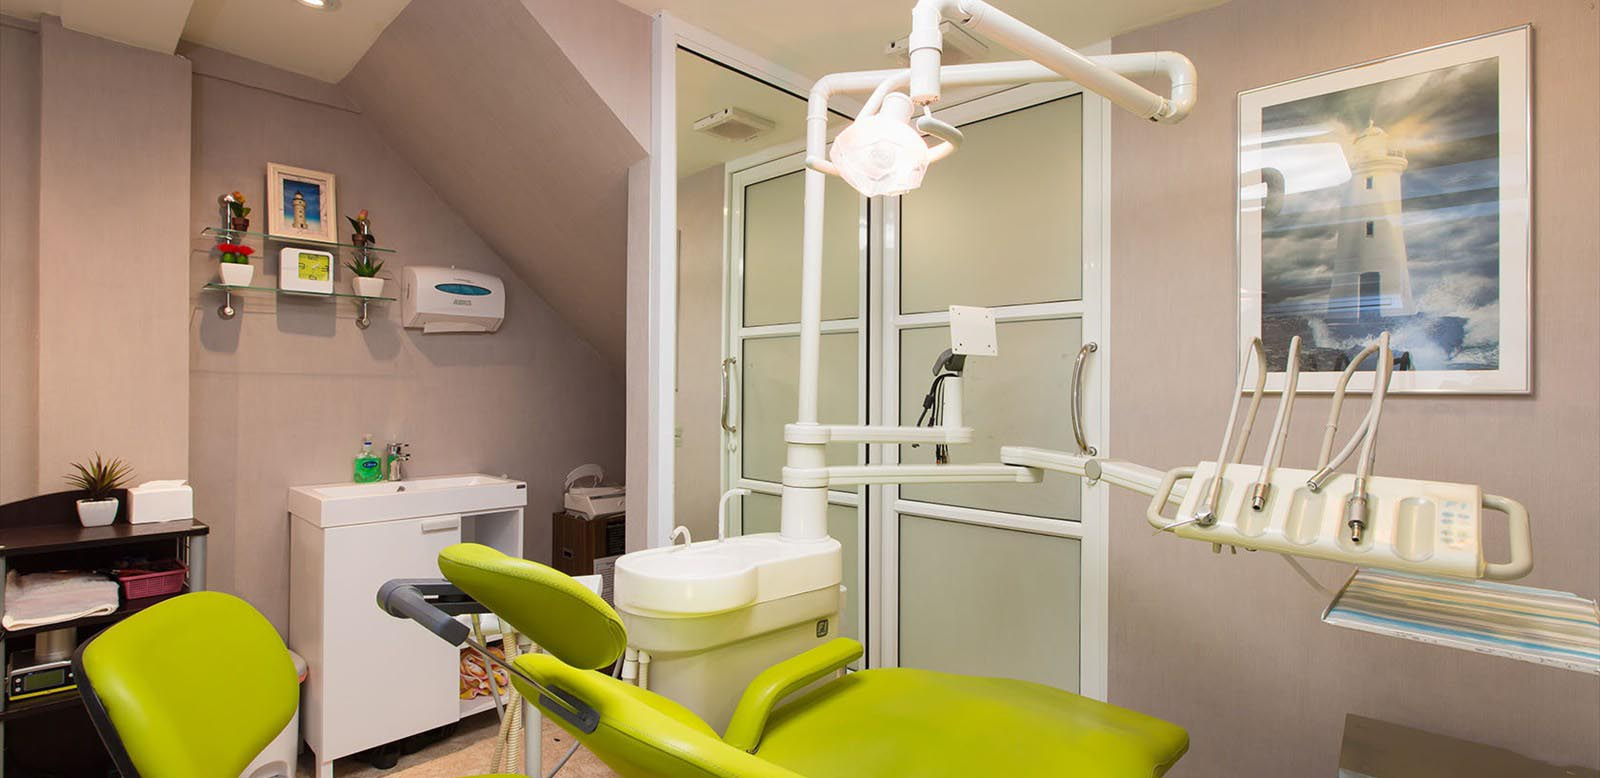 what-are-dental-care-service